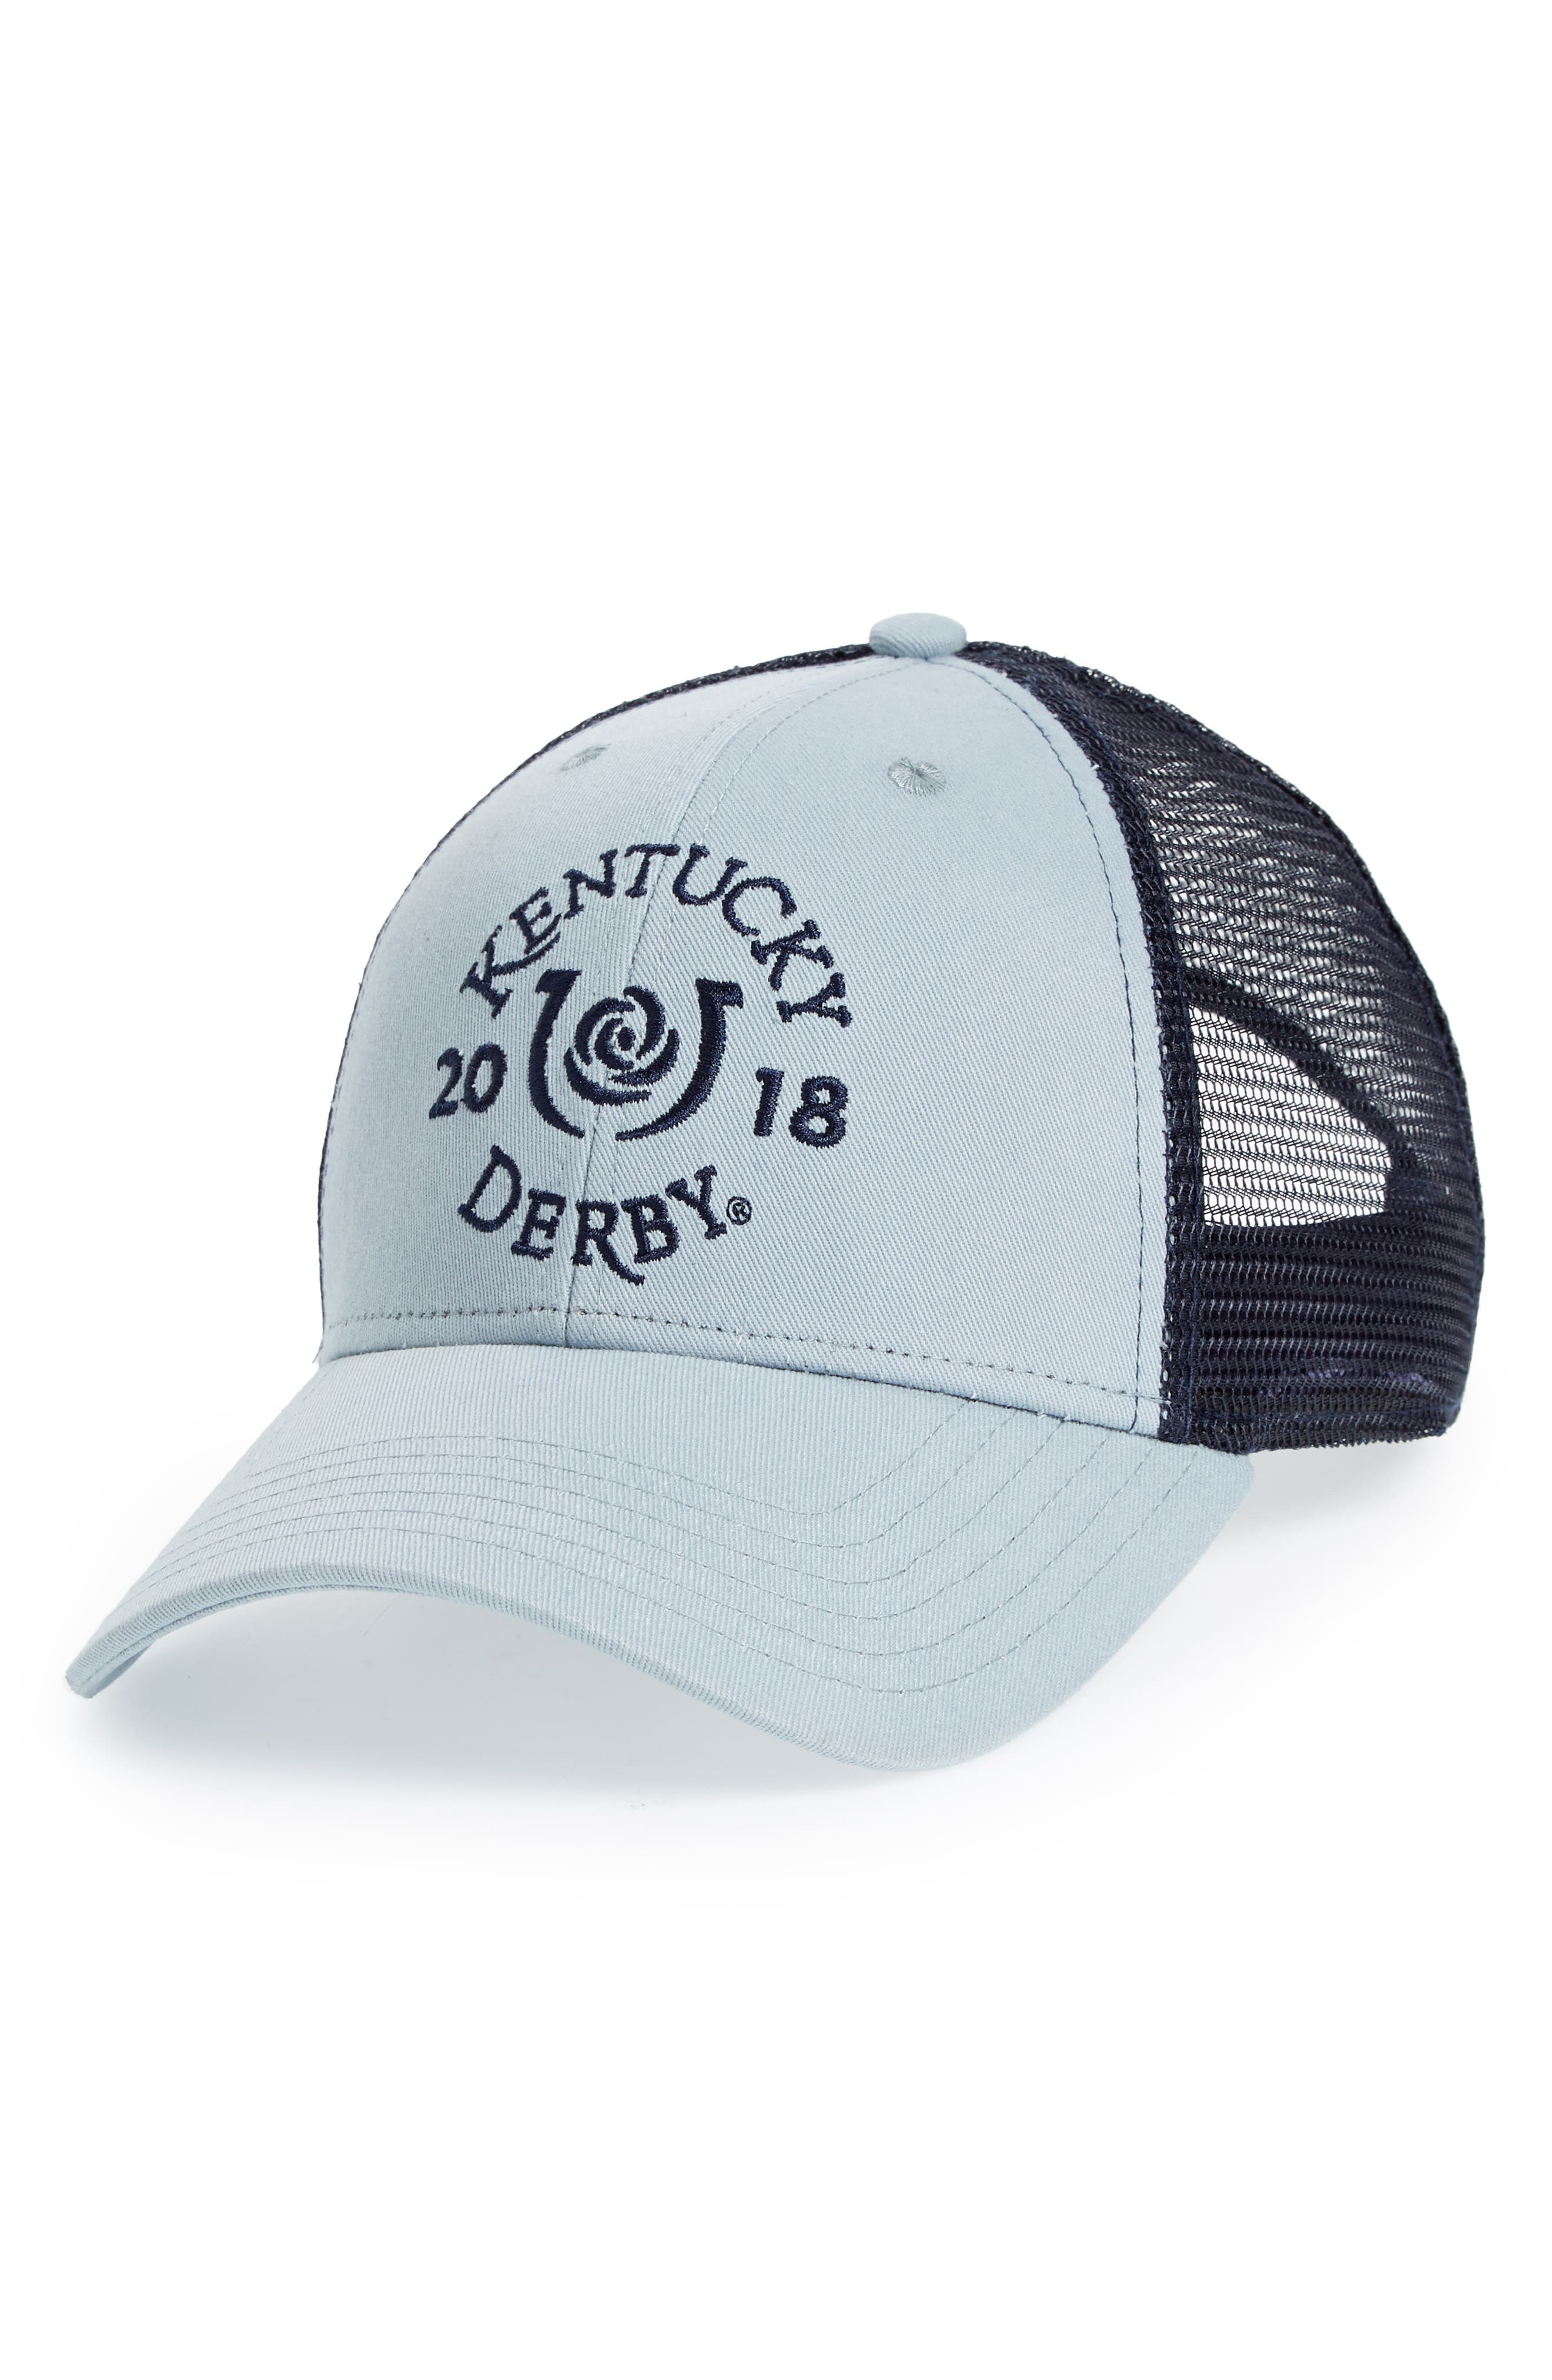 2018 Kentucky Derby<sup>®</sup> Garland of Roses Ball Cap,                             Main thumbnail 1, color,                             Graphite